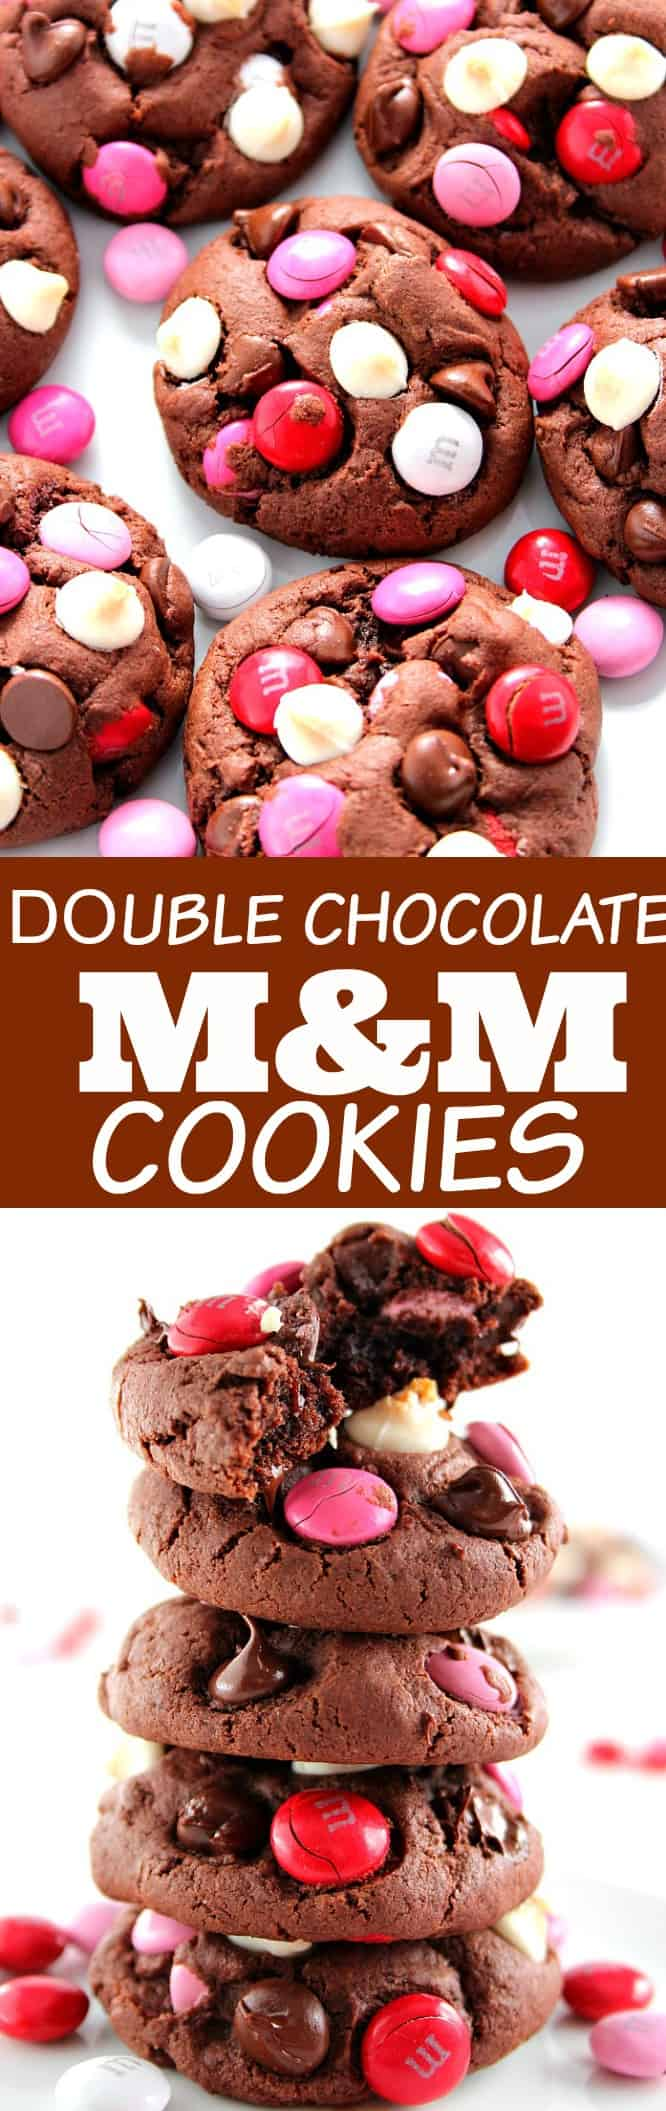 vday cookies long Double Chocolate M&M Cookies Recipe